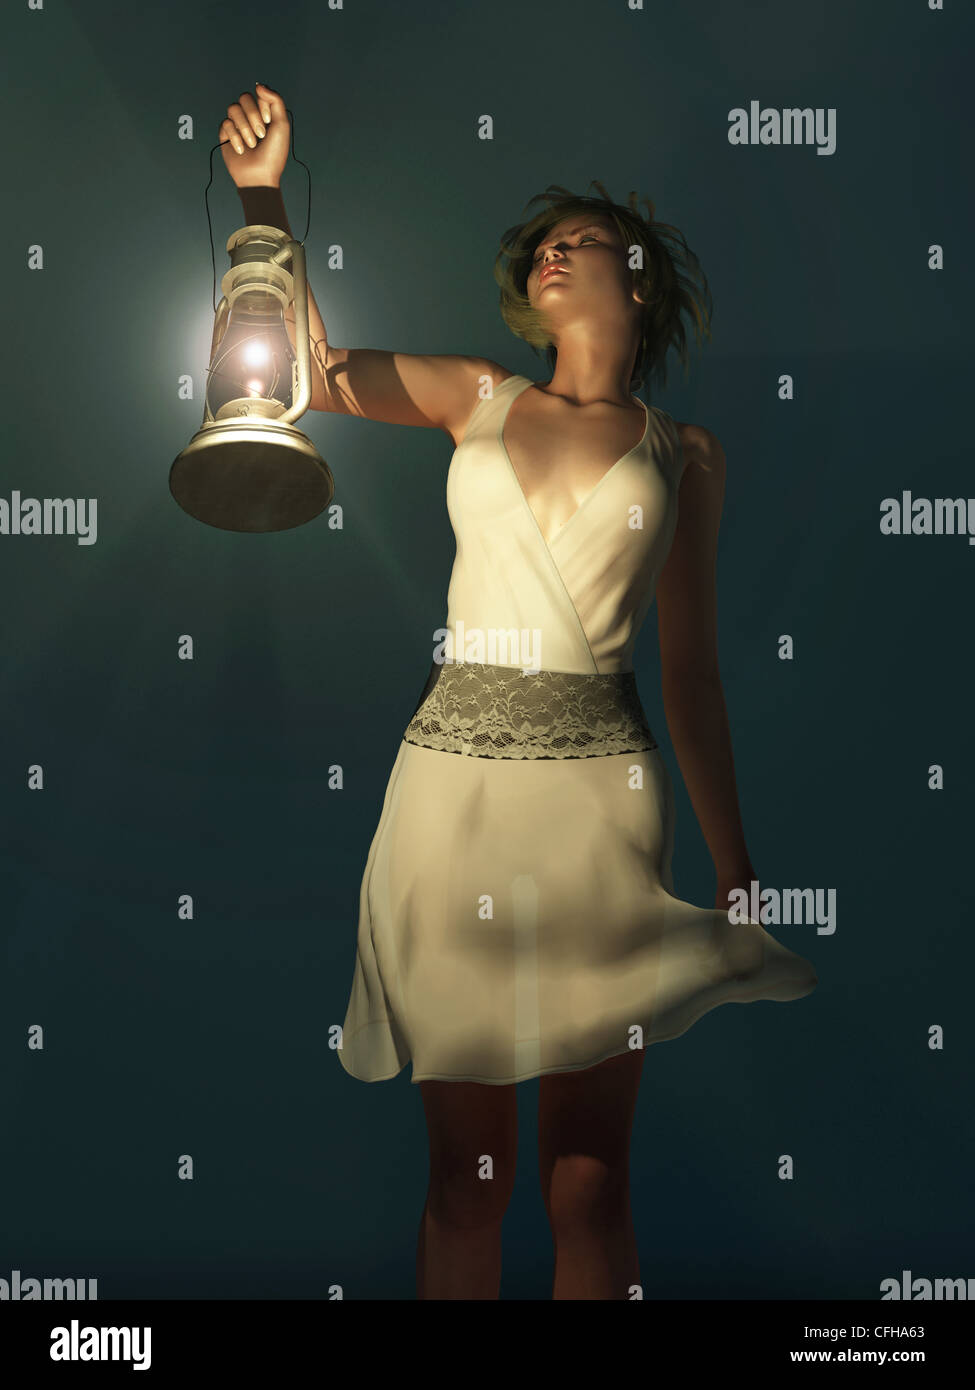 woman with a lantern wandering in the dark - Stock Image